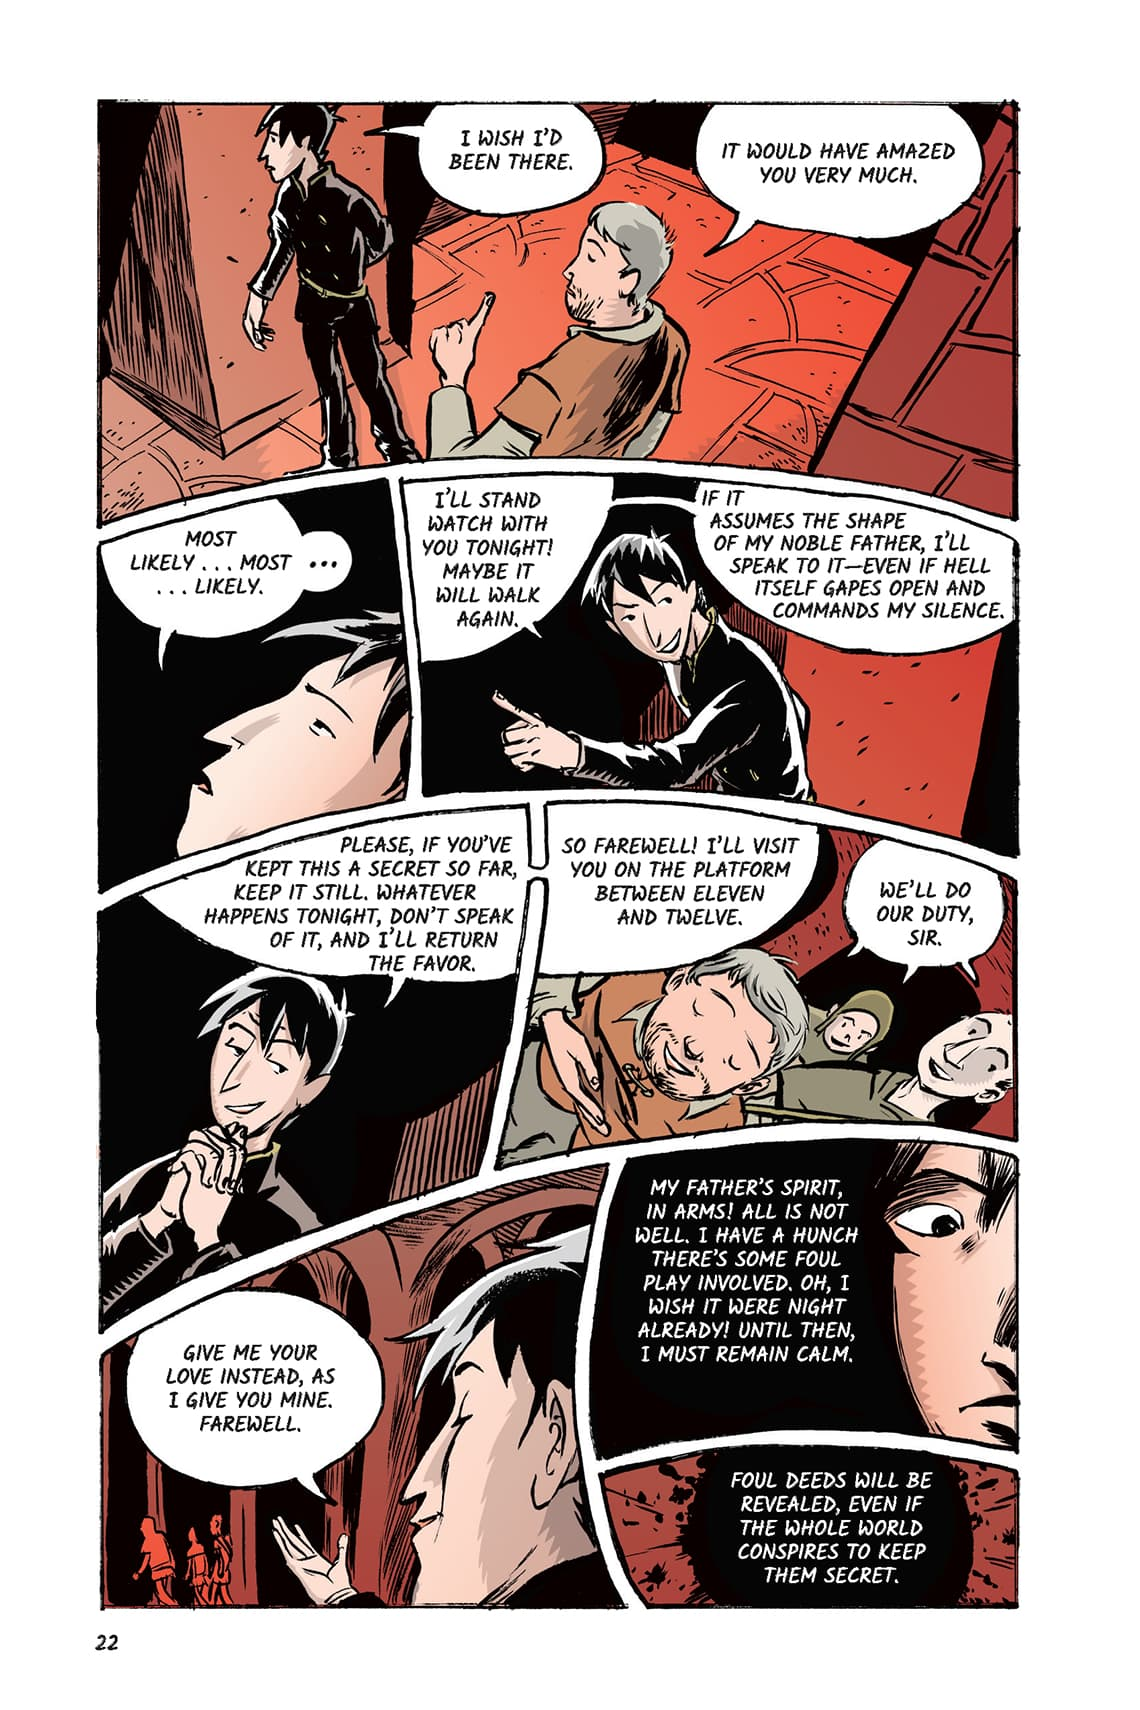 Hamlet Act 1 Scene 2 Page 22 Graphic Novel Sparknotes No Fear Shakespeare